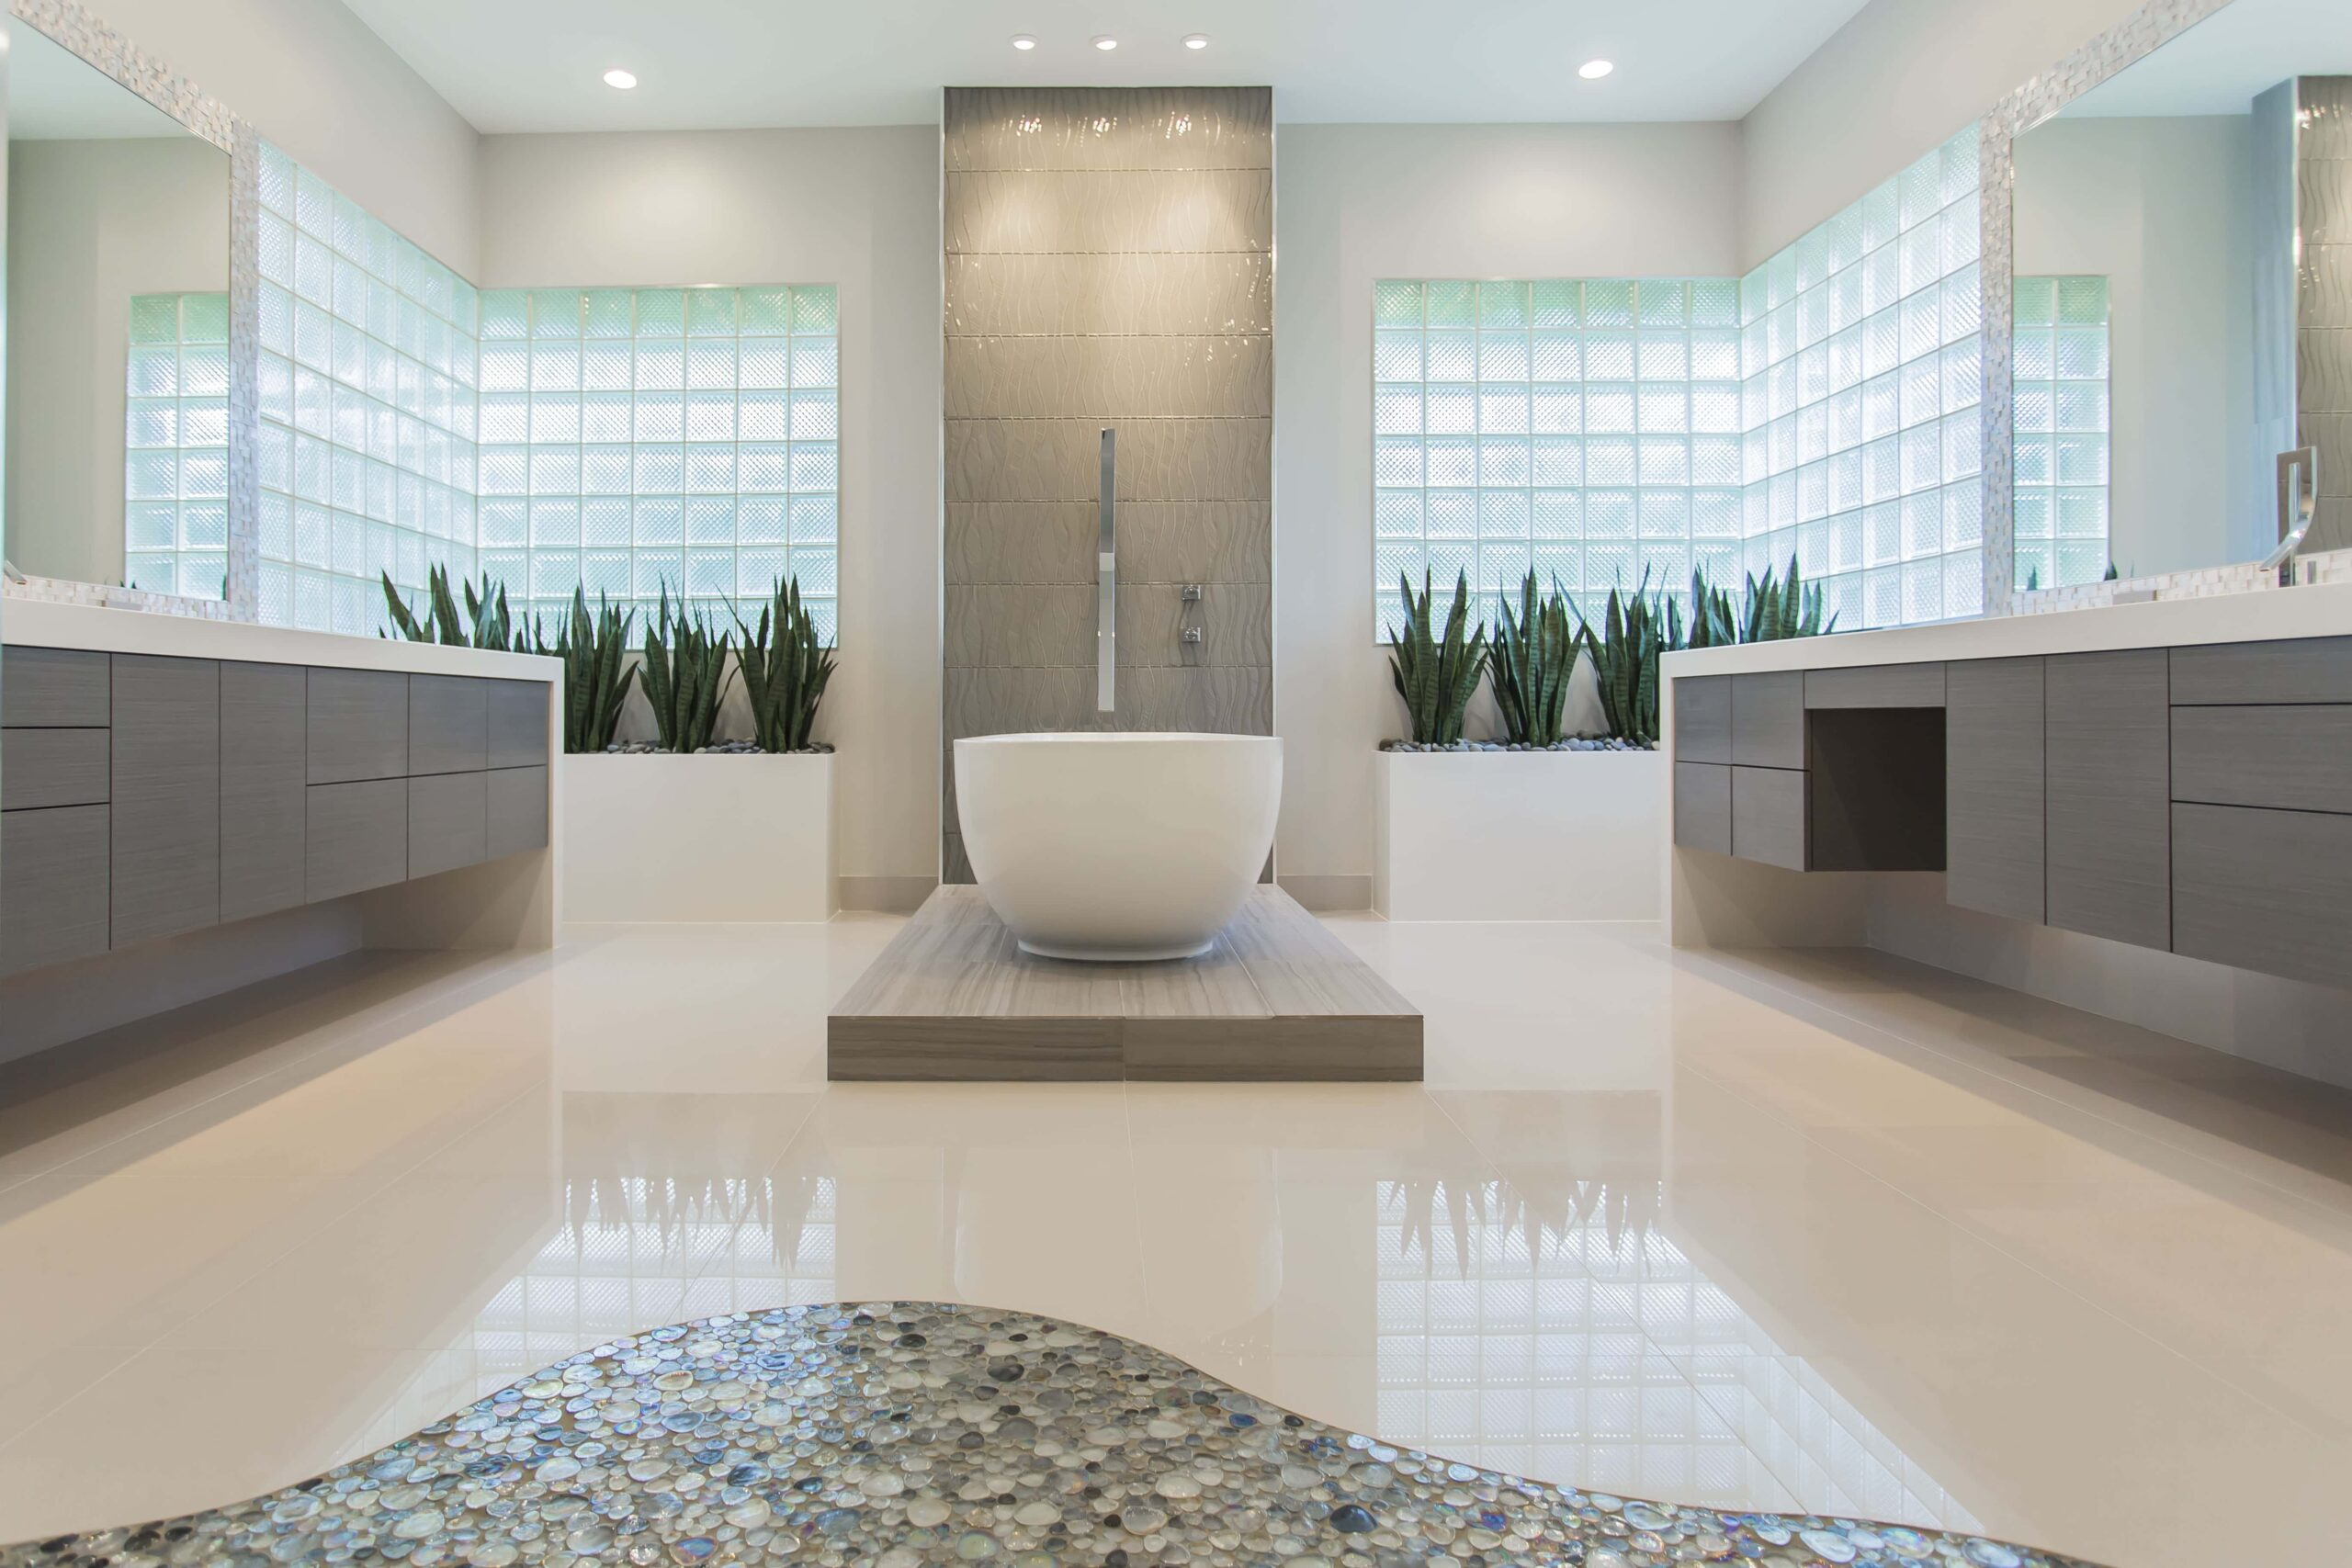 Bathroom Remodeling Houston Tx Memorial Modern Master Bath Remodel  Houston Tx  2015 .